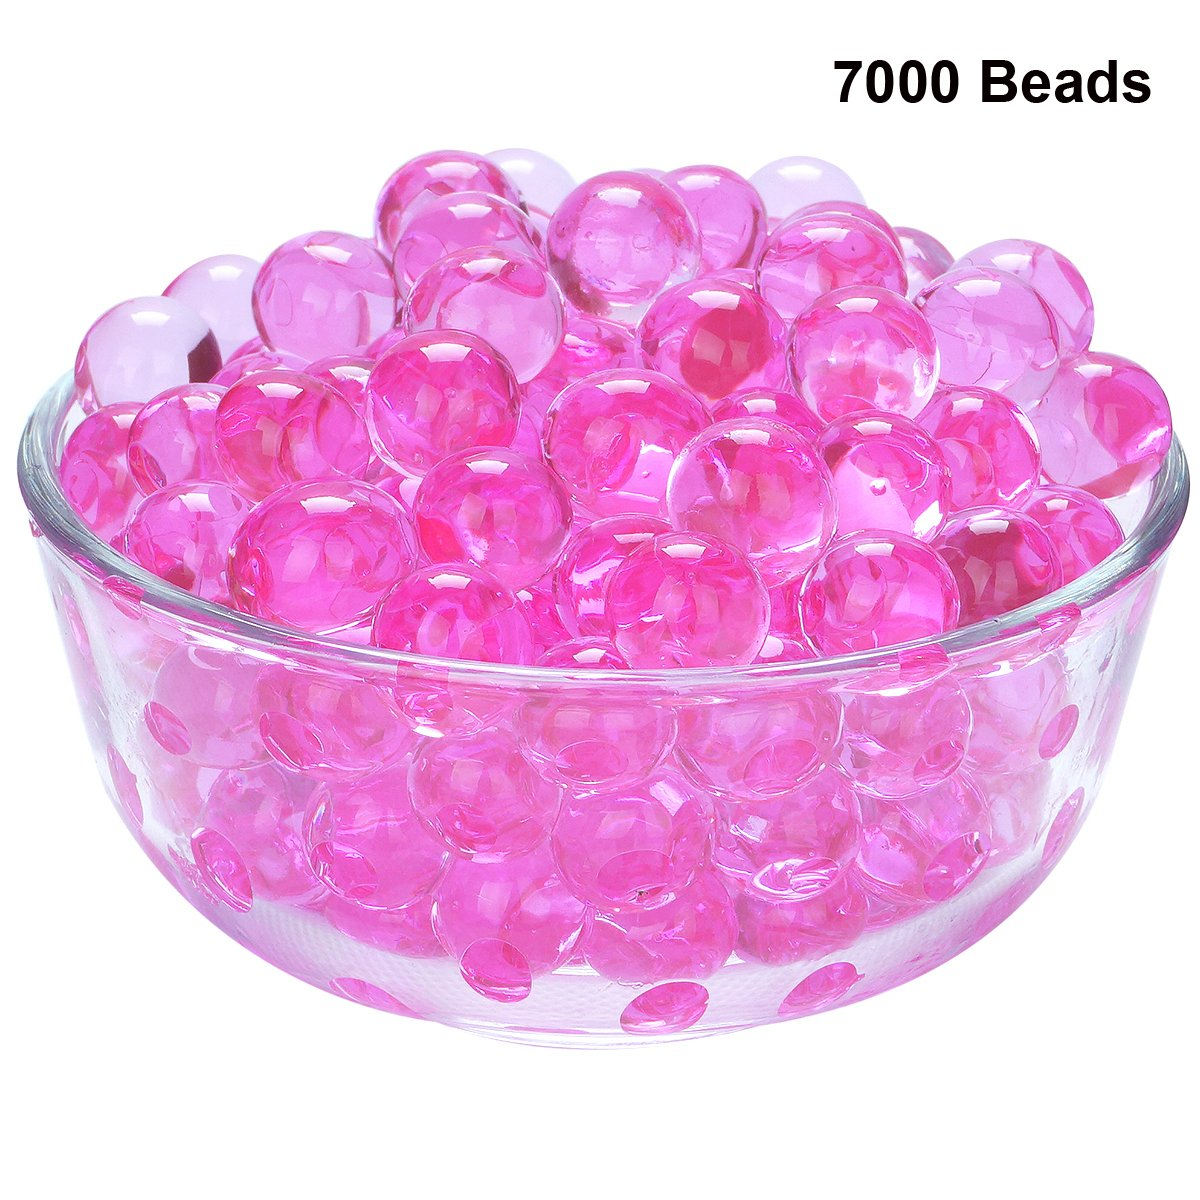 LOVOUS 7000 Pcs Water Beads, Crystal Soil Water Bead Gel, Wedding Decoration Vase Filler - Furniture Decorative Vase Filler, All Occasion Table Scatters Centerpiece Decorations(Rose)